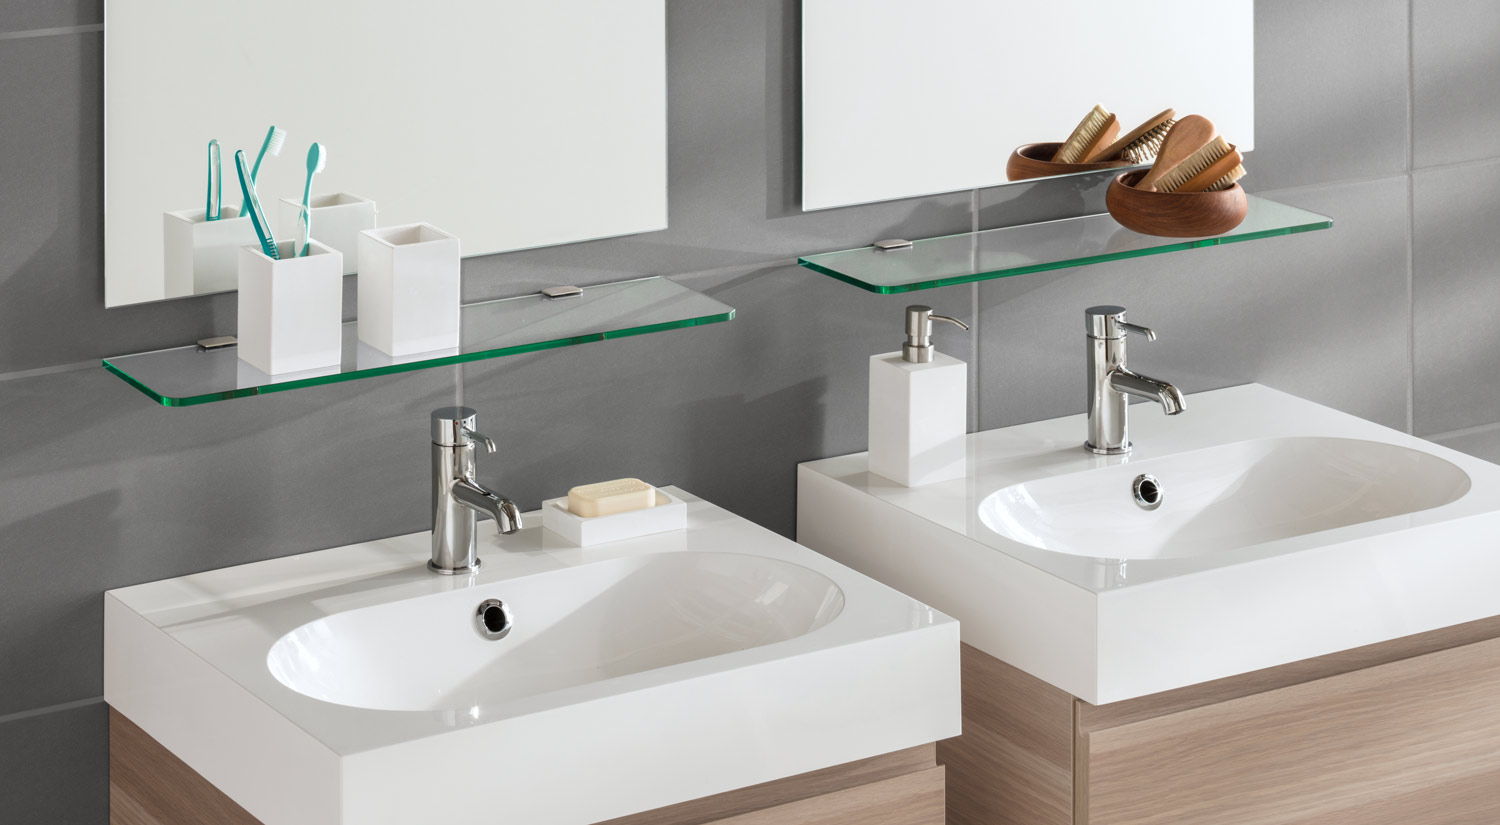 Glass shelf boards - ROUND glass shelf board with FLAC glass shelf bracket in the bathroom